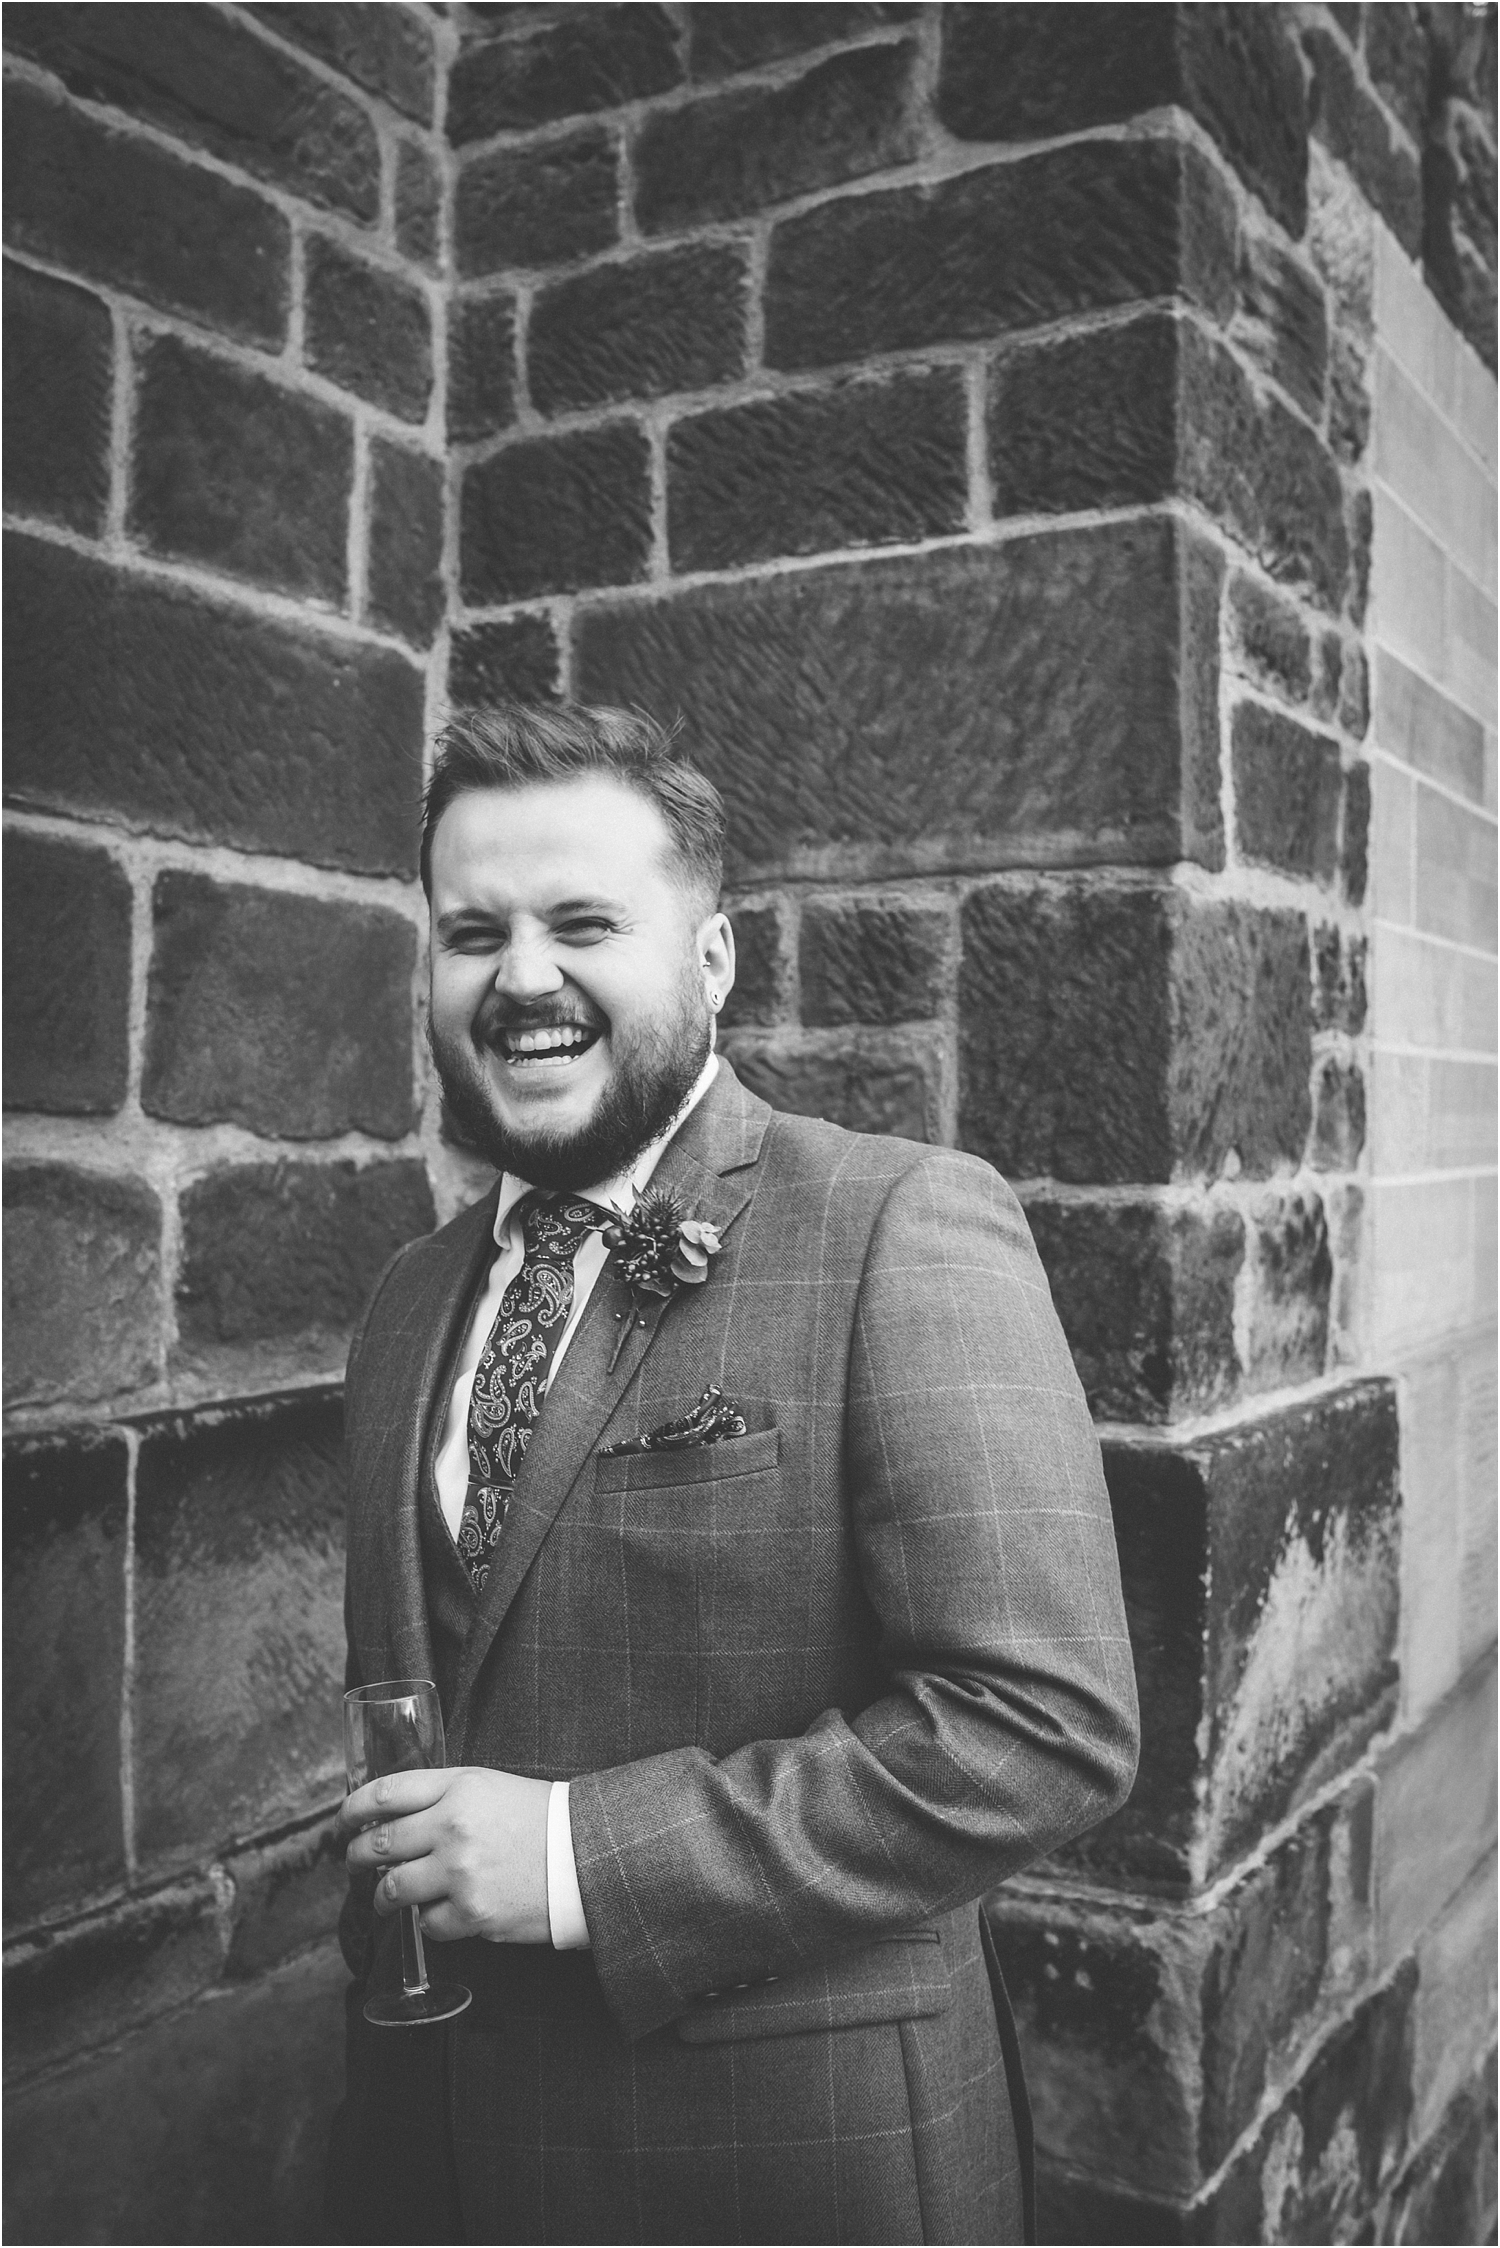 Victoria-Ben-The-West-Mill-darley-abbey-natural-relaxed-documentary-wedding-photography-photographer-Derby-Nottingham-Derbyshire-Nottinghamshire-Leicestershire-Lincolnshire-East-Midlands_0043.jpg